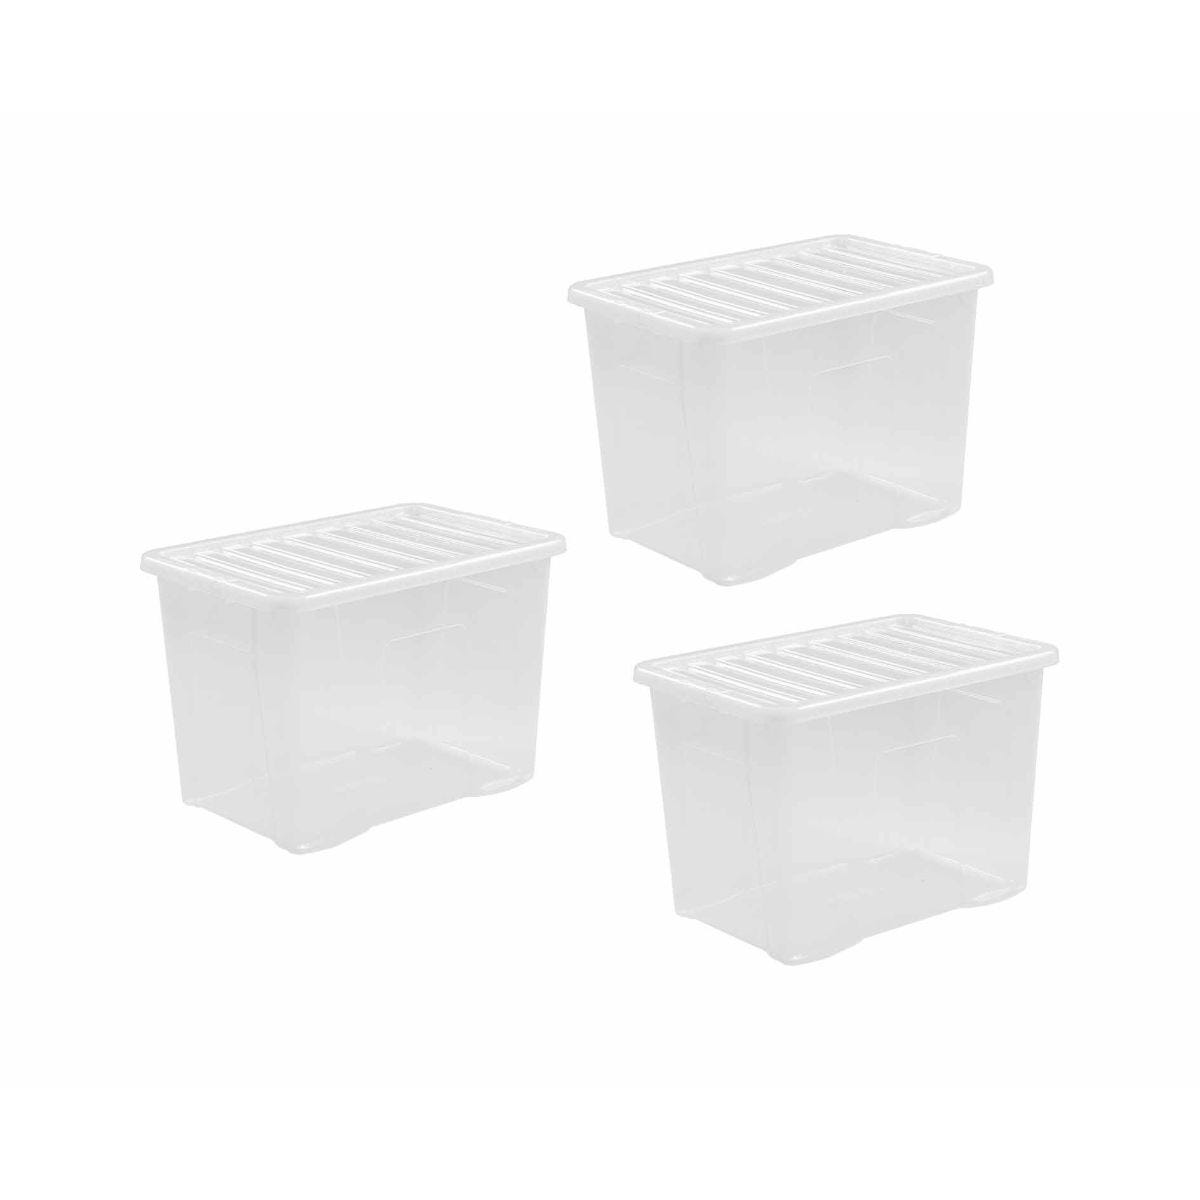 Wham Crystal Boxes 80 Litres Pack of 3 Clear